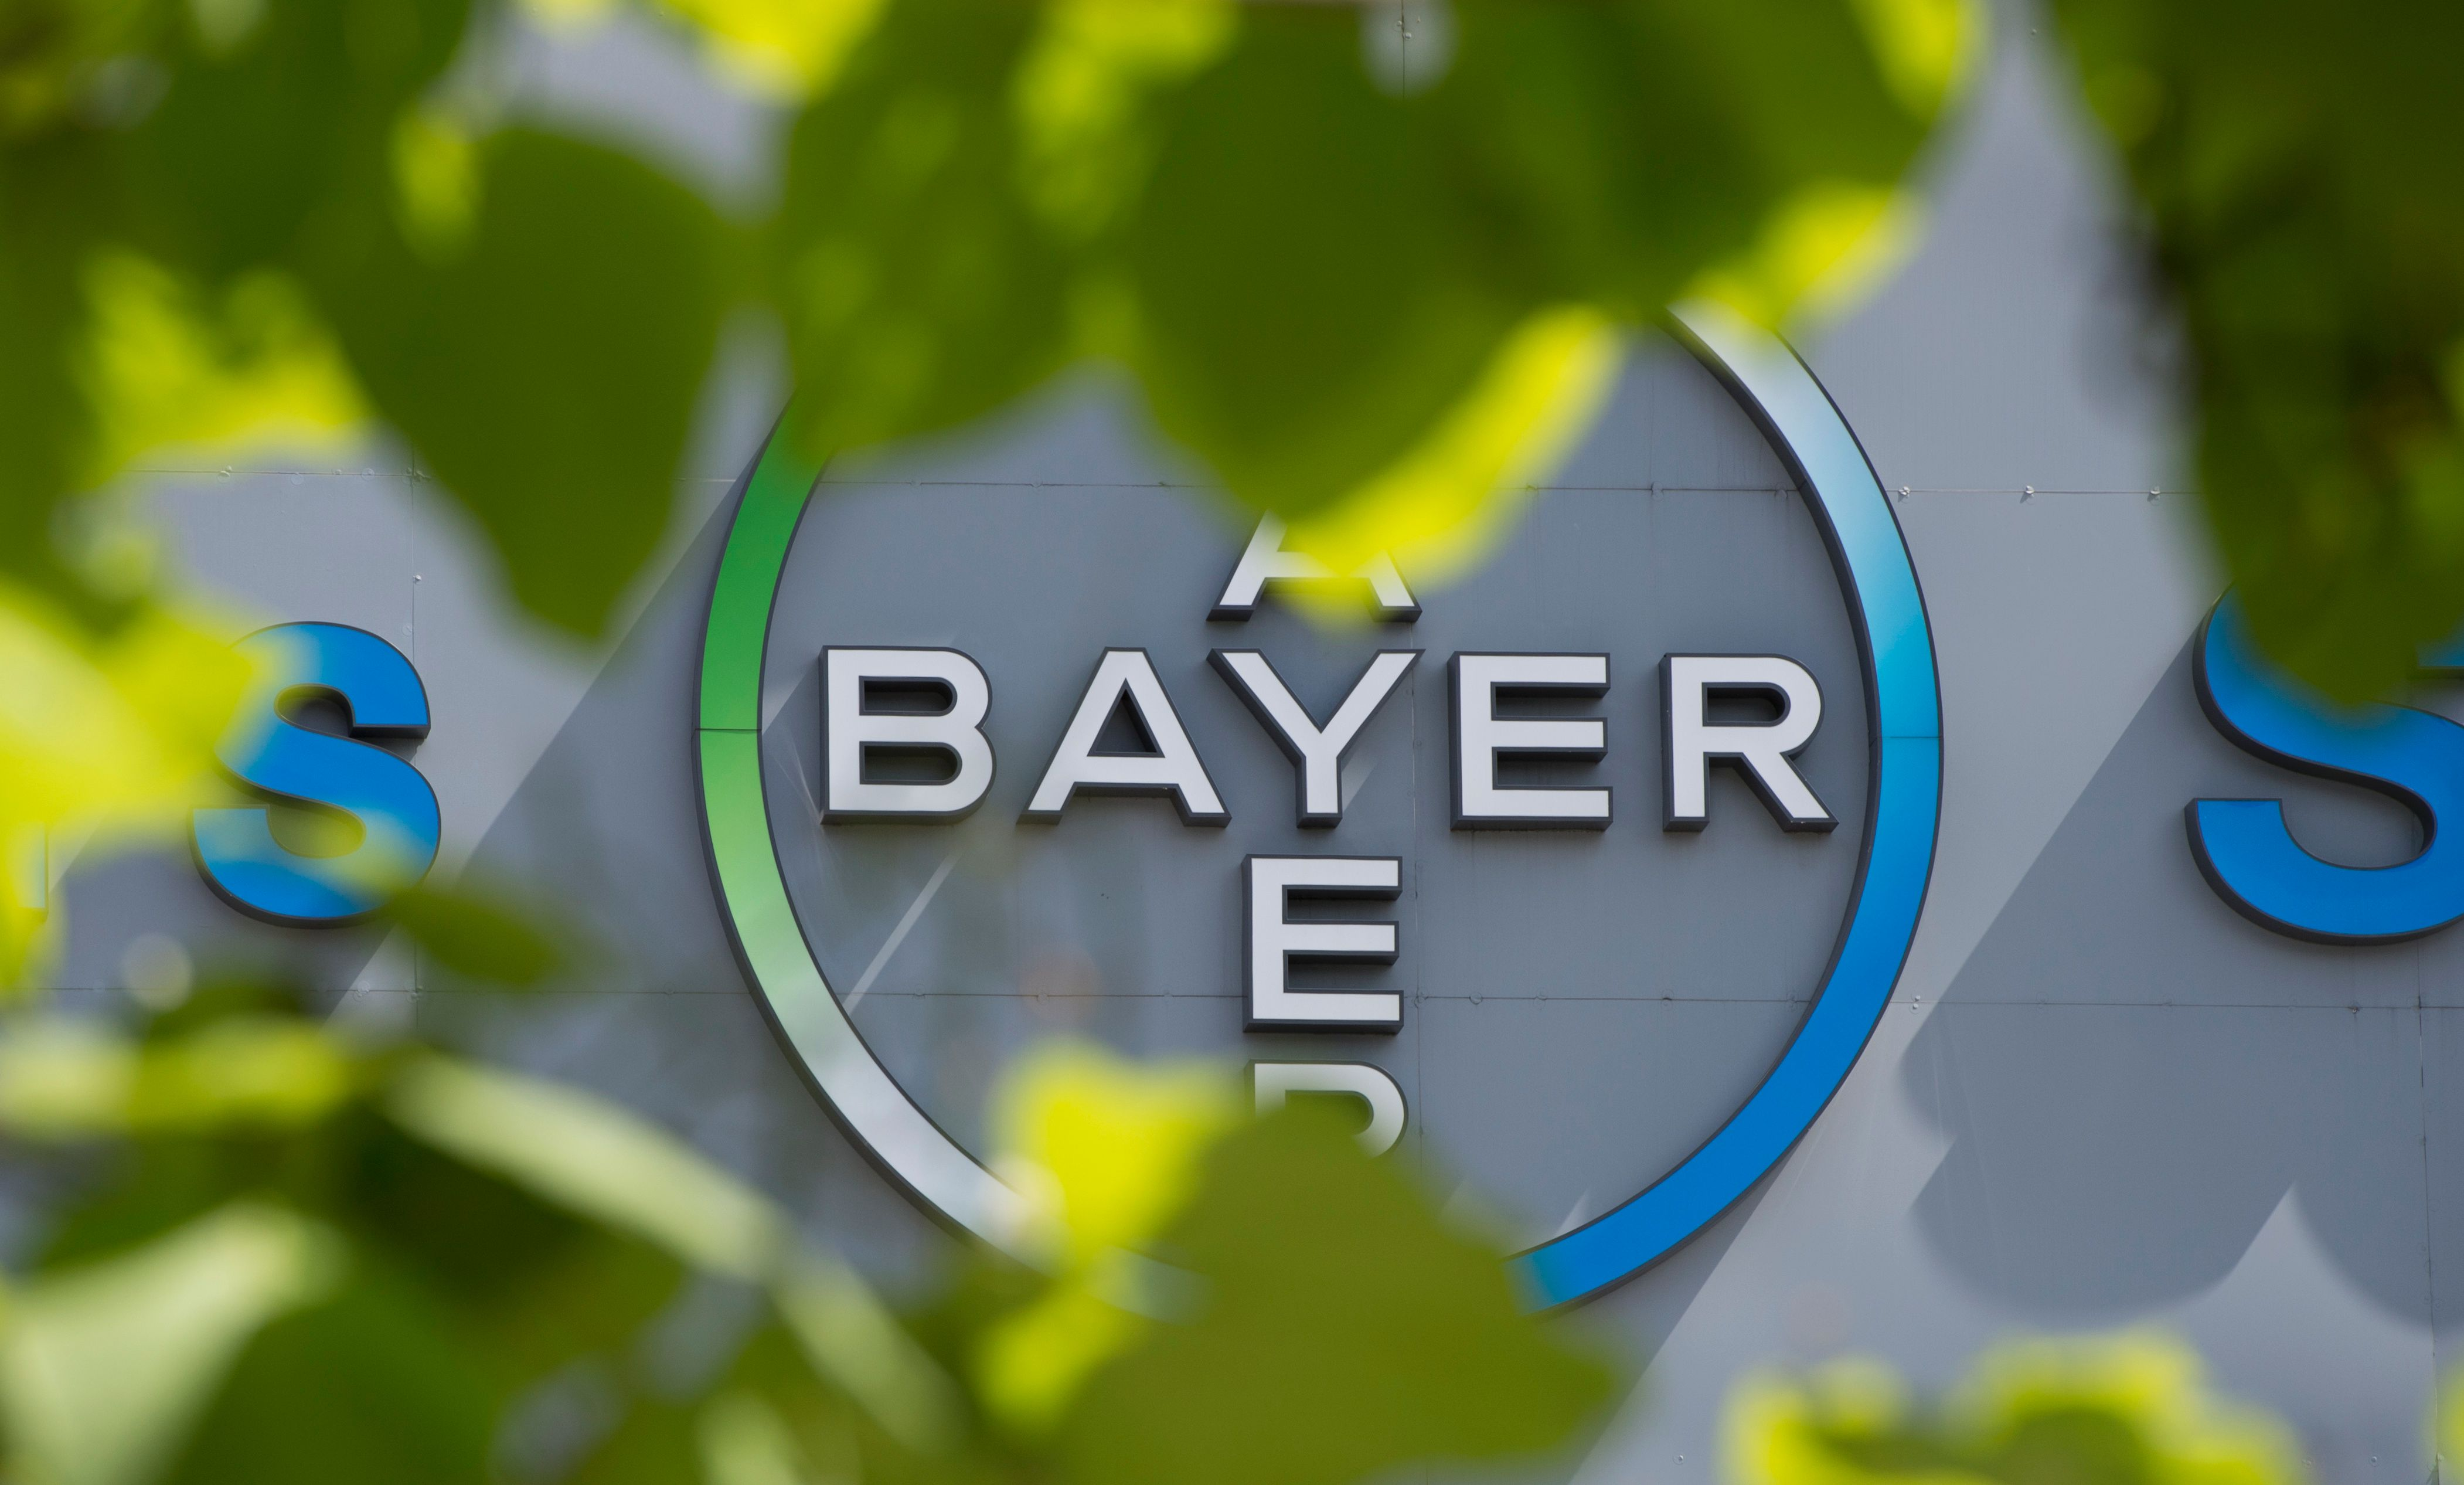 monsanto creating a life sciences company Monsanto-bayer merger closing in the german international pharmaceutical and life sciences company has received clearance in monsanto is currently.